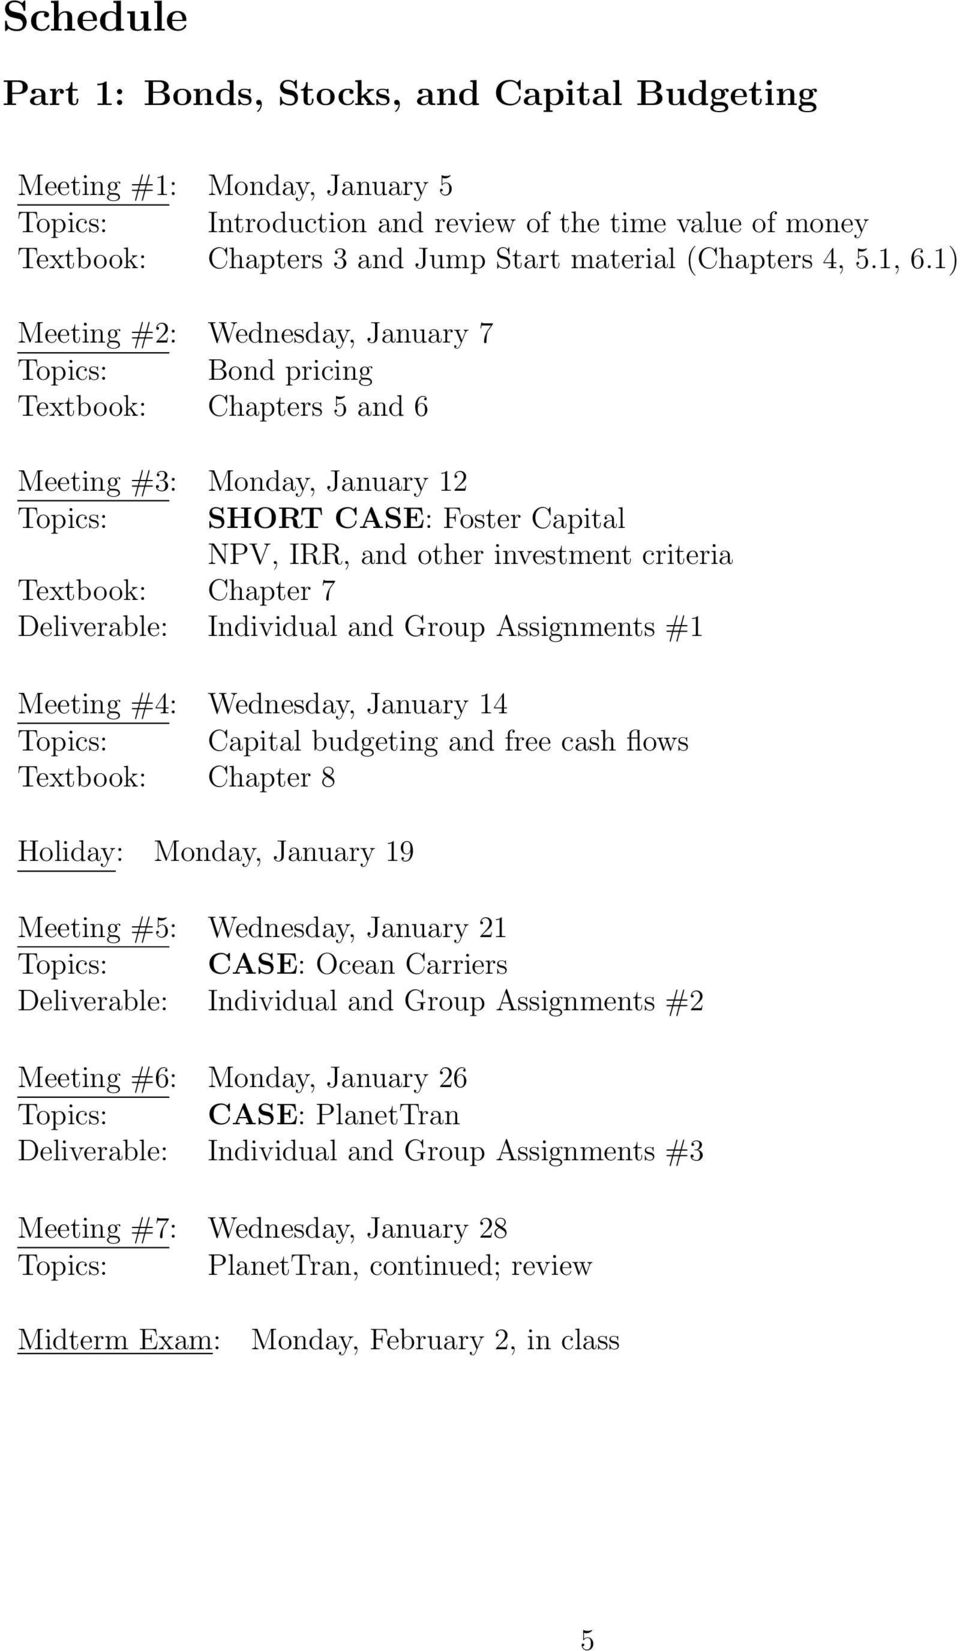 1) Meeting #2: Wednesday, January 7 Topics: Bond pricing Textbook: Chapters 5 and 6 Meeting #3: Monday, January 12 Topics: SHORT CASE: Foster Capital NPV, IRR, and other investment criteria Textbook: